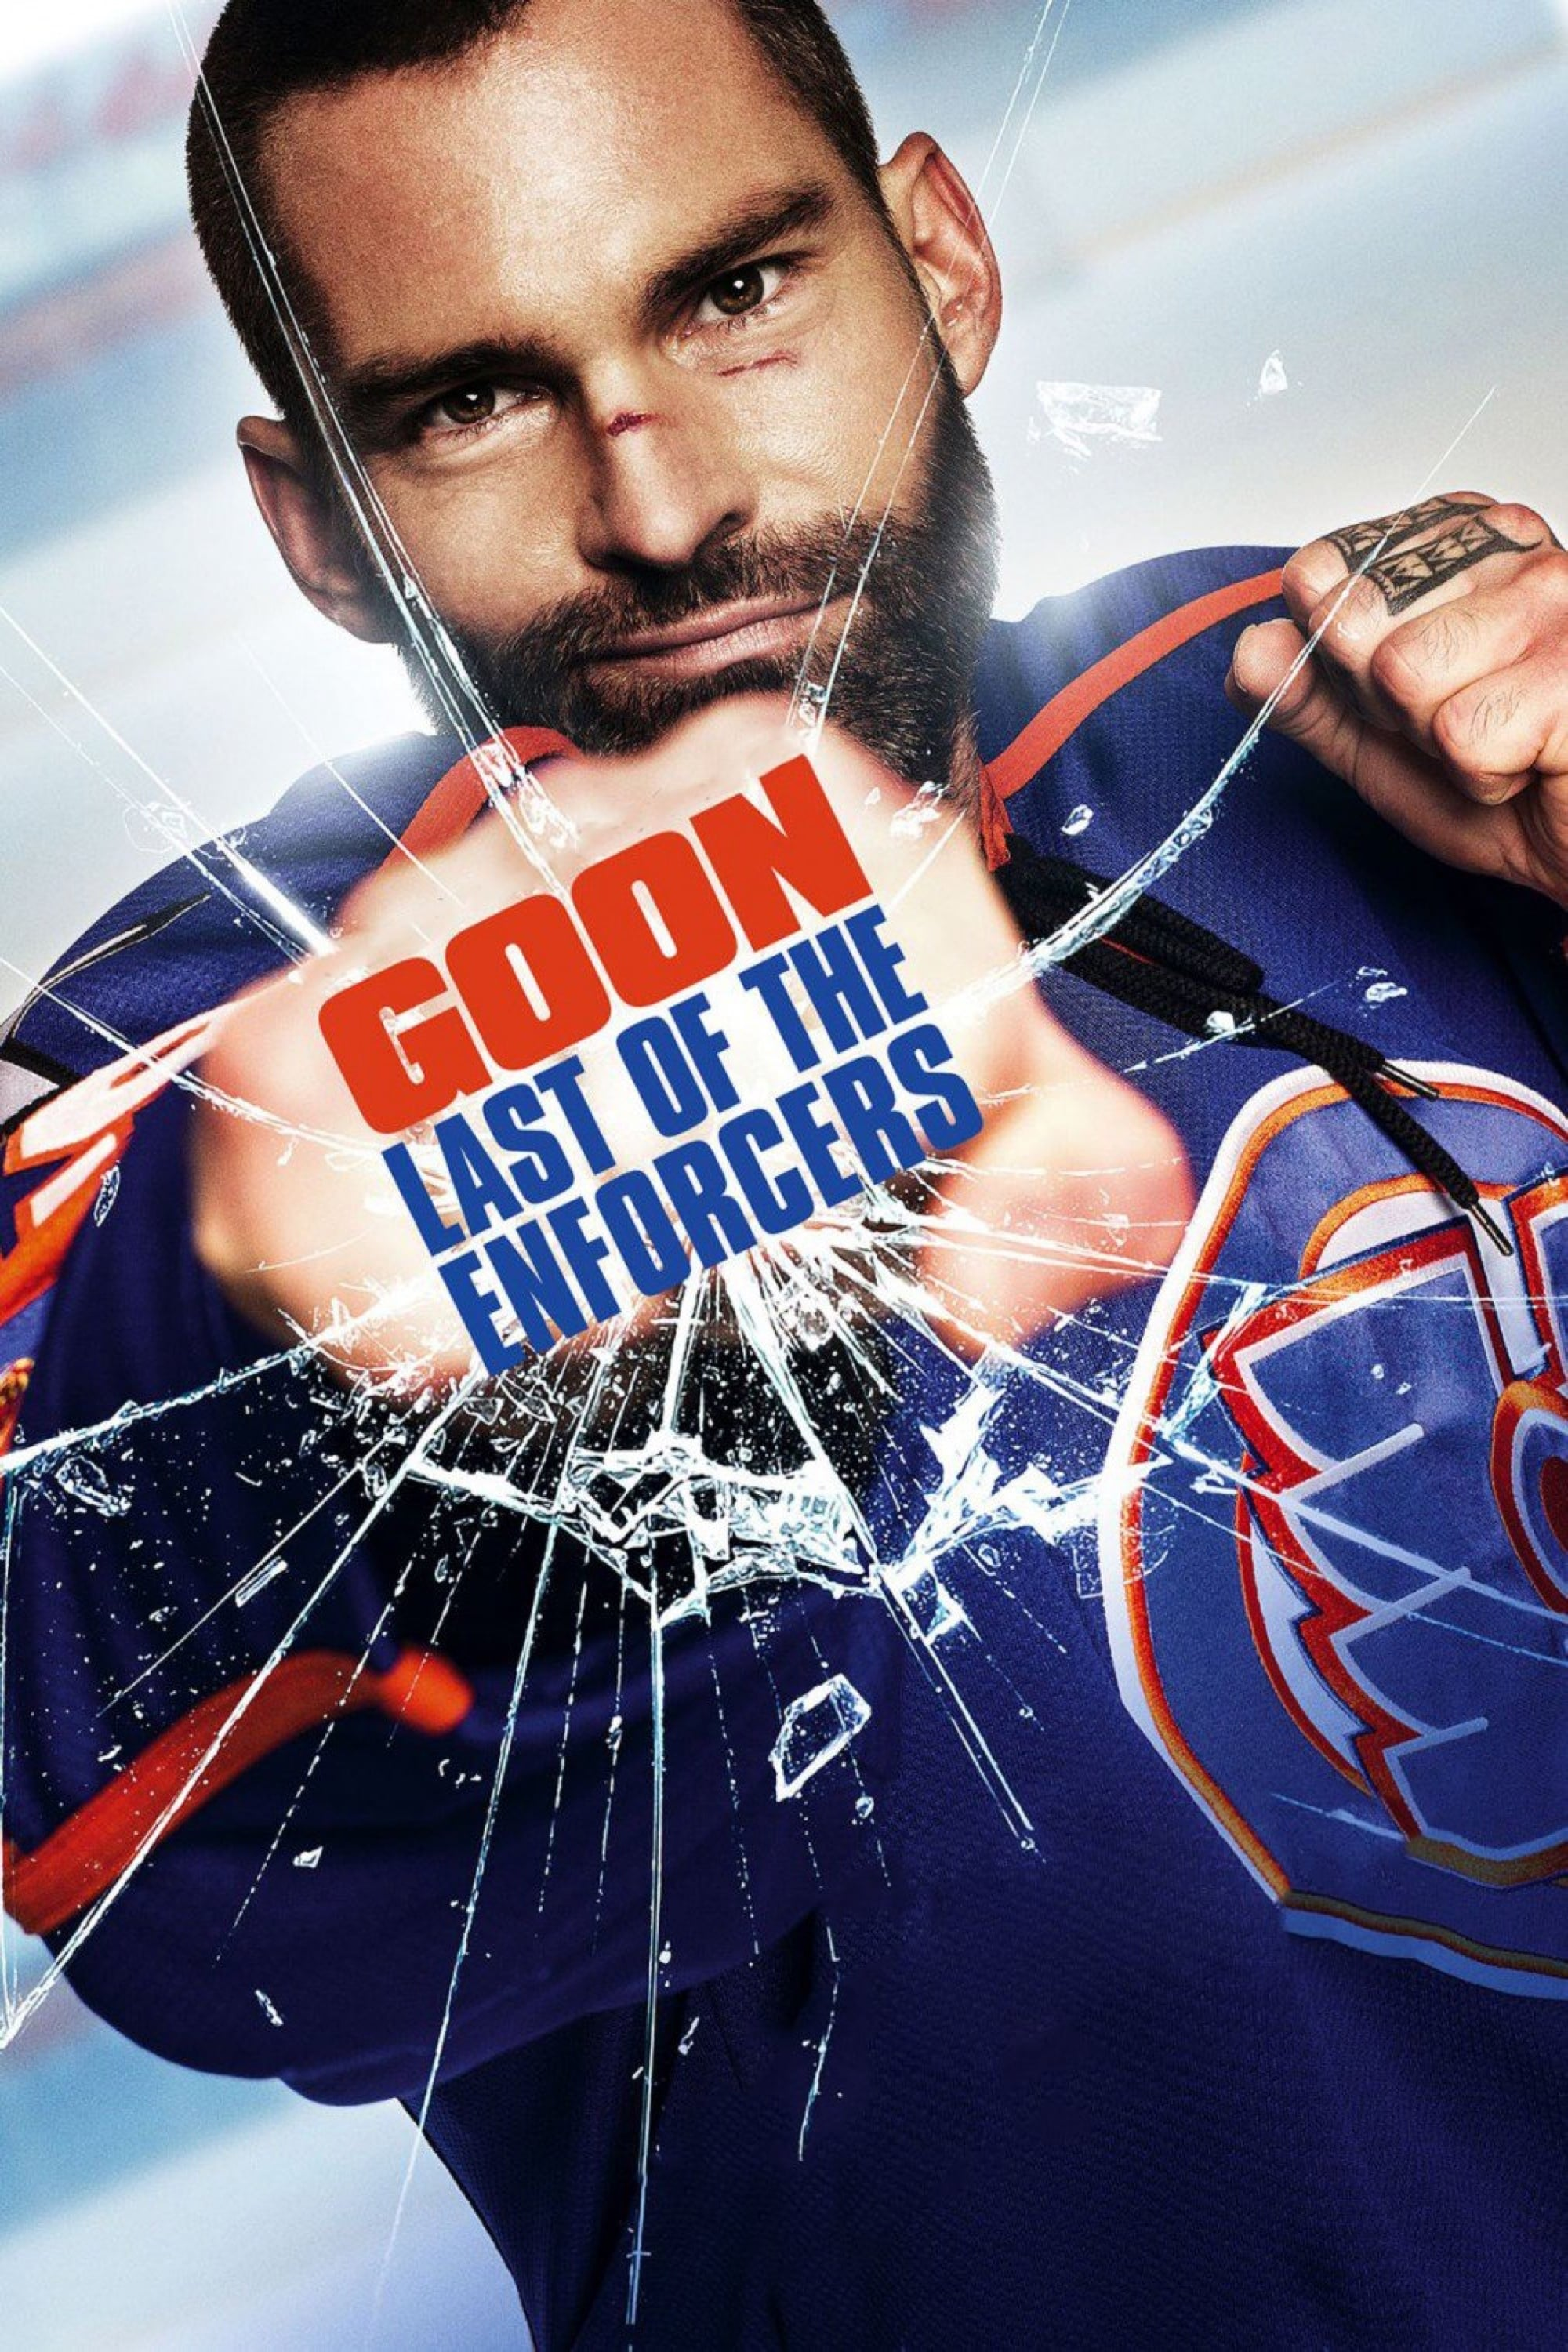 Póster Goon: Last of the Enforcers